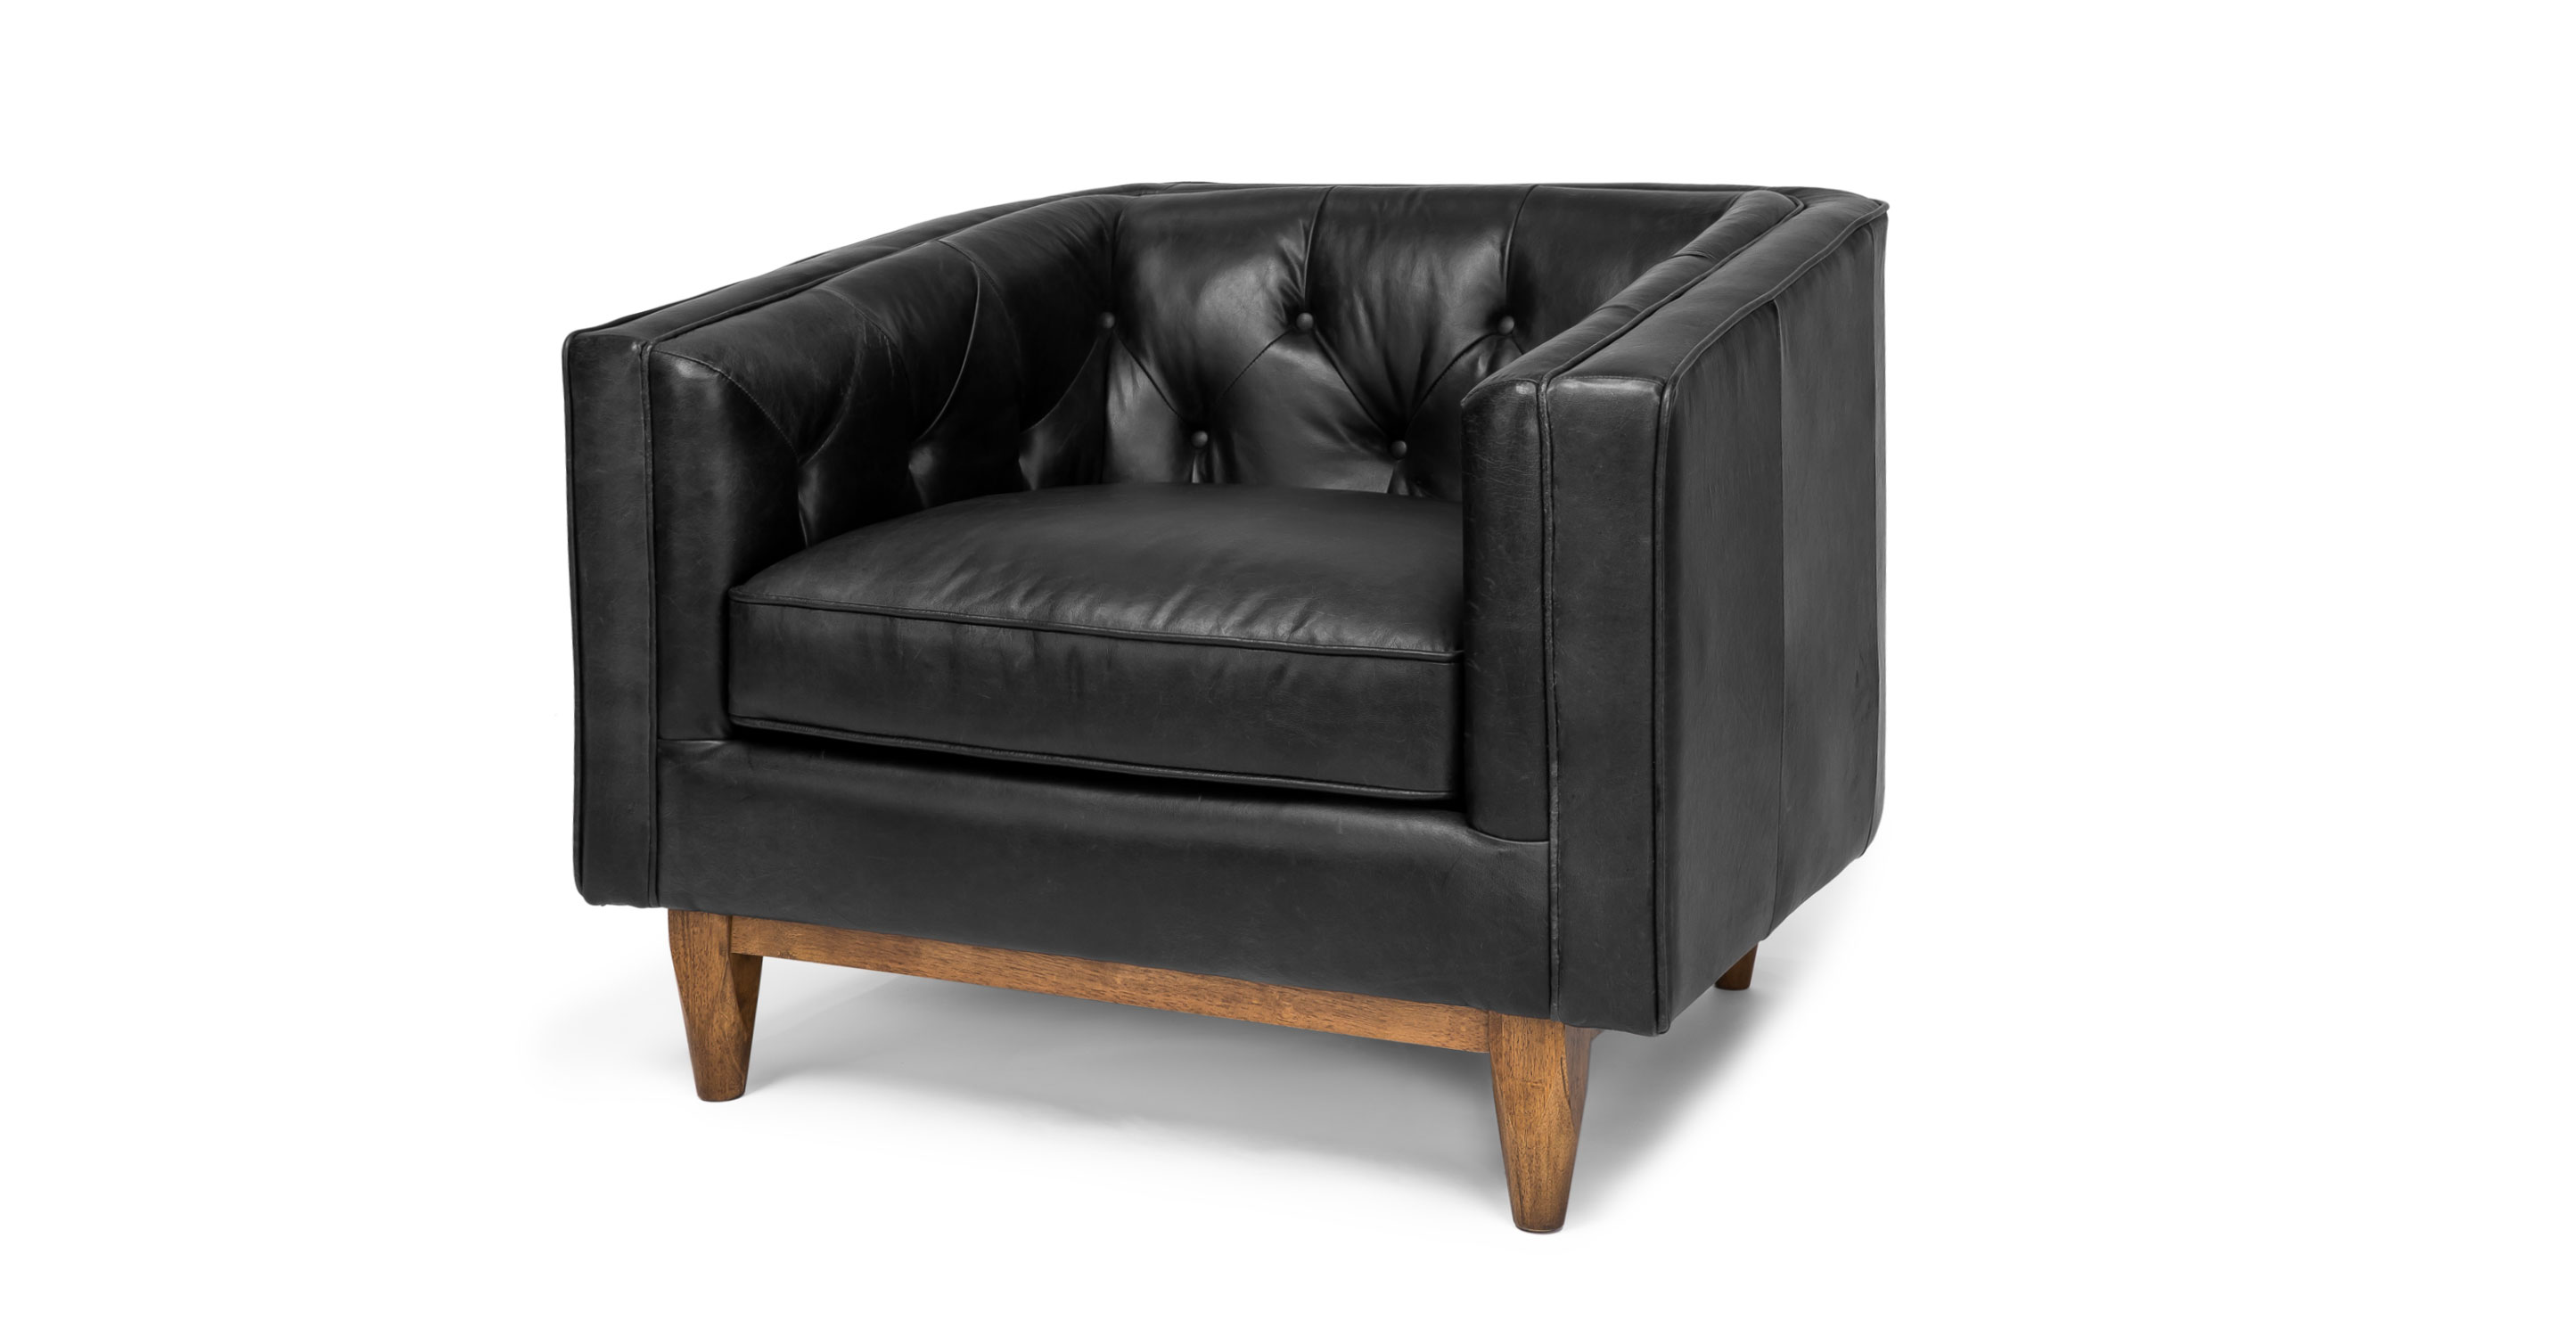 Alcott Oxford Black Armchair Lounge Chairs Article Modern Mid Century And Scandinavian